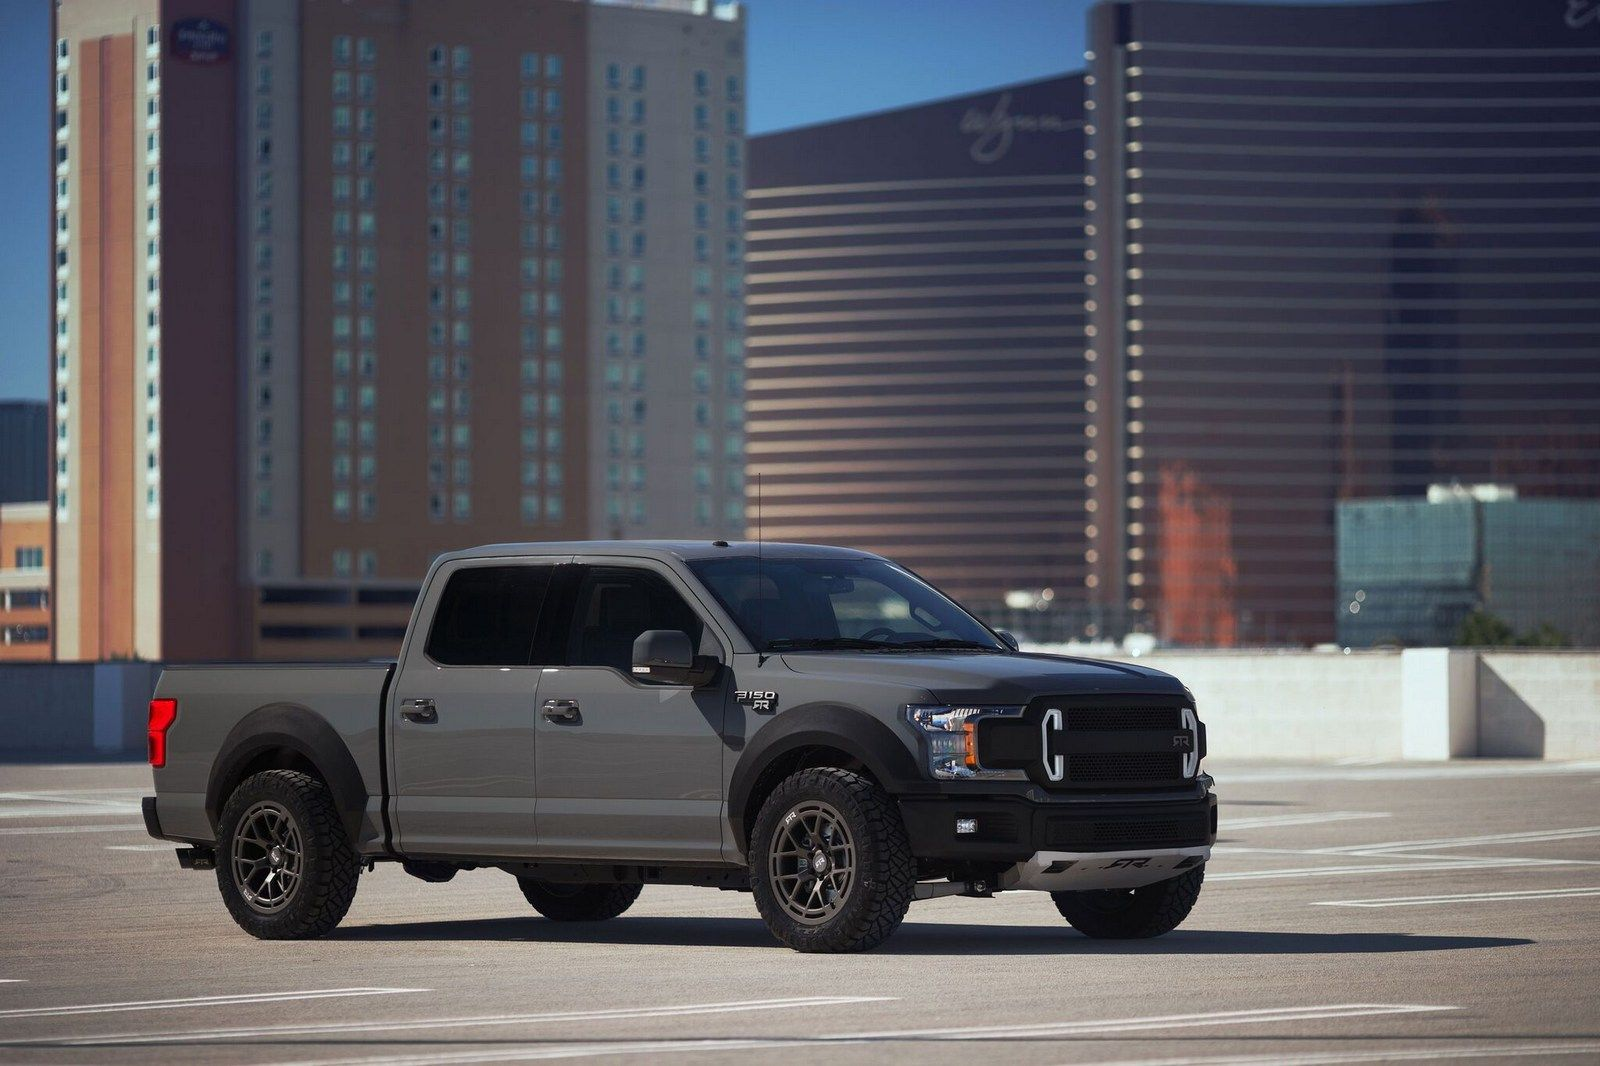 Ford F 150 Rtr Muscle Truck Concept Unveiled With 600 Hp Muscle Truck Ford F150 Rtr